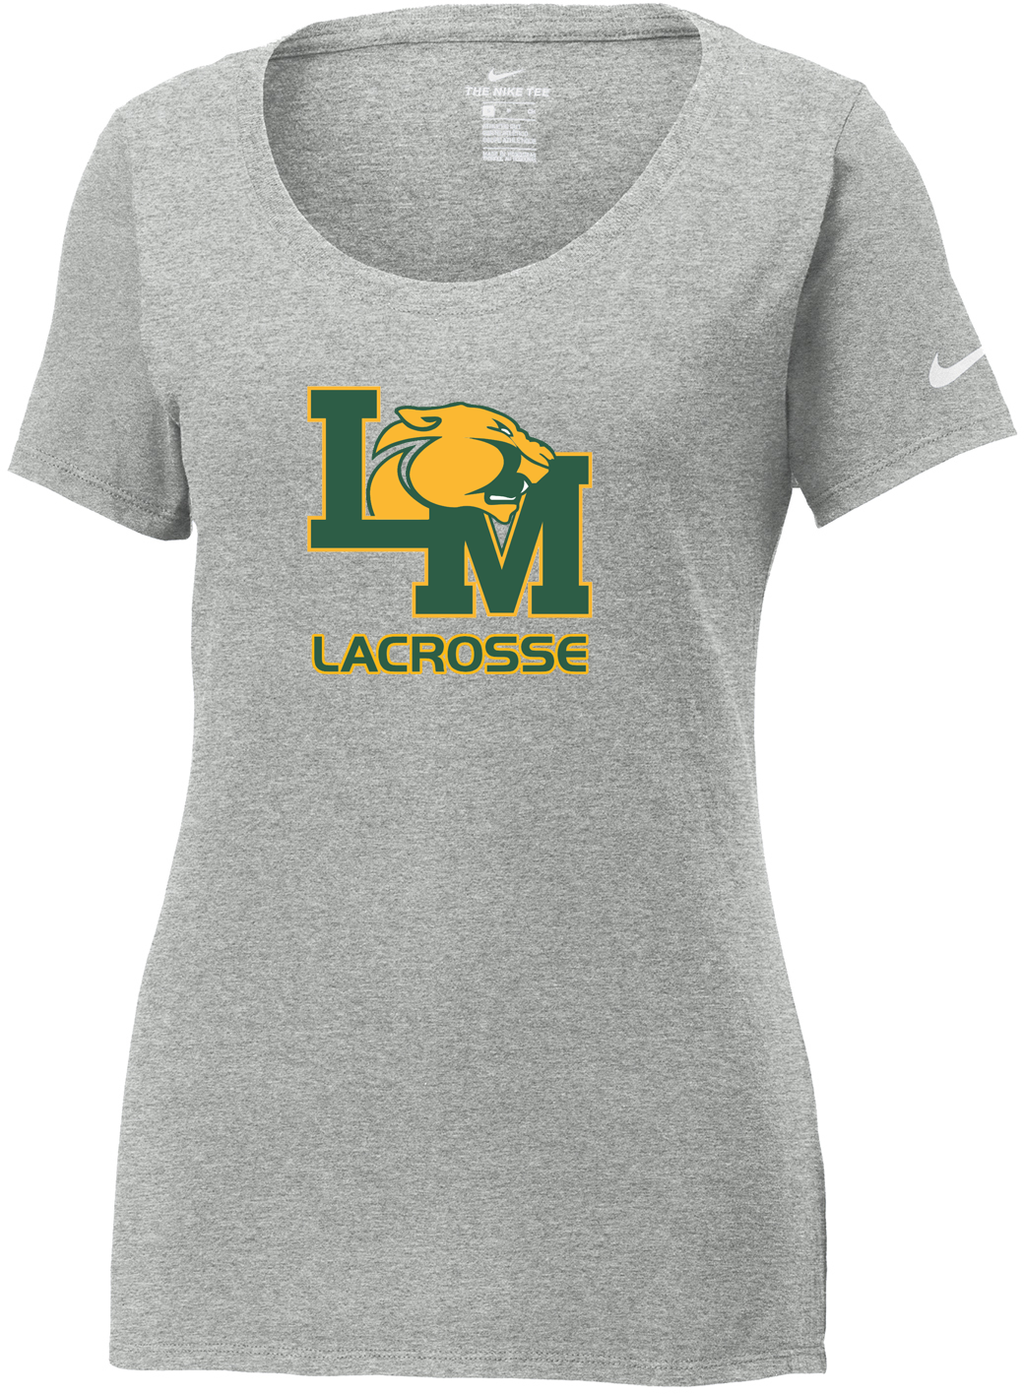 Little Miami Lacrosse Grey Heather Nike Ladies Core Cotton Tee